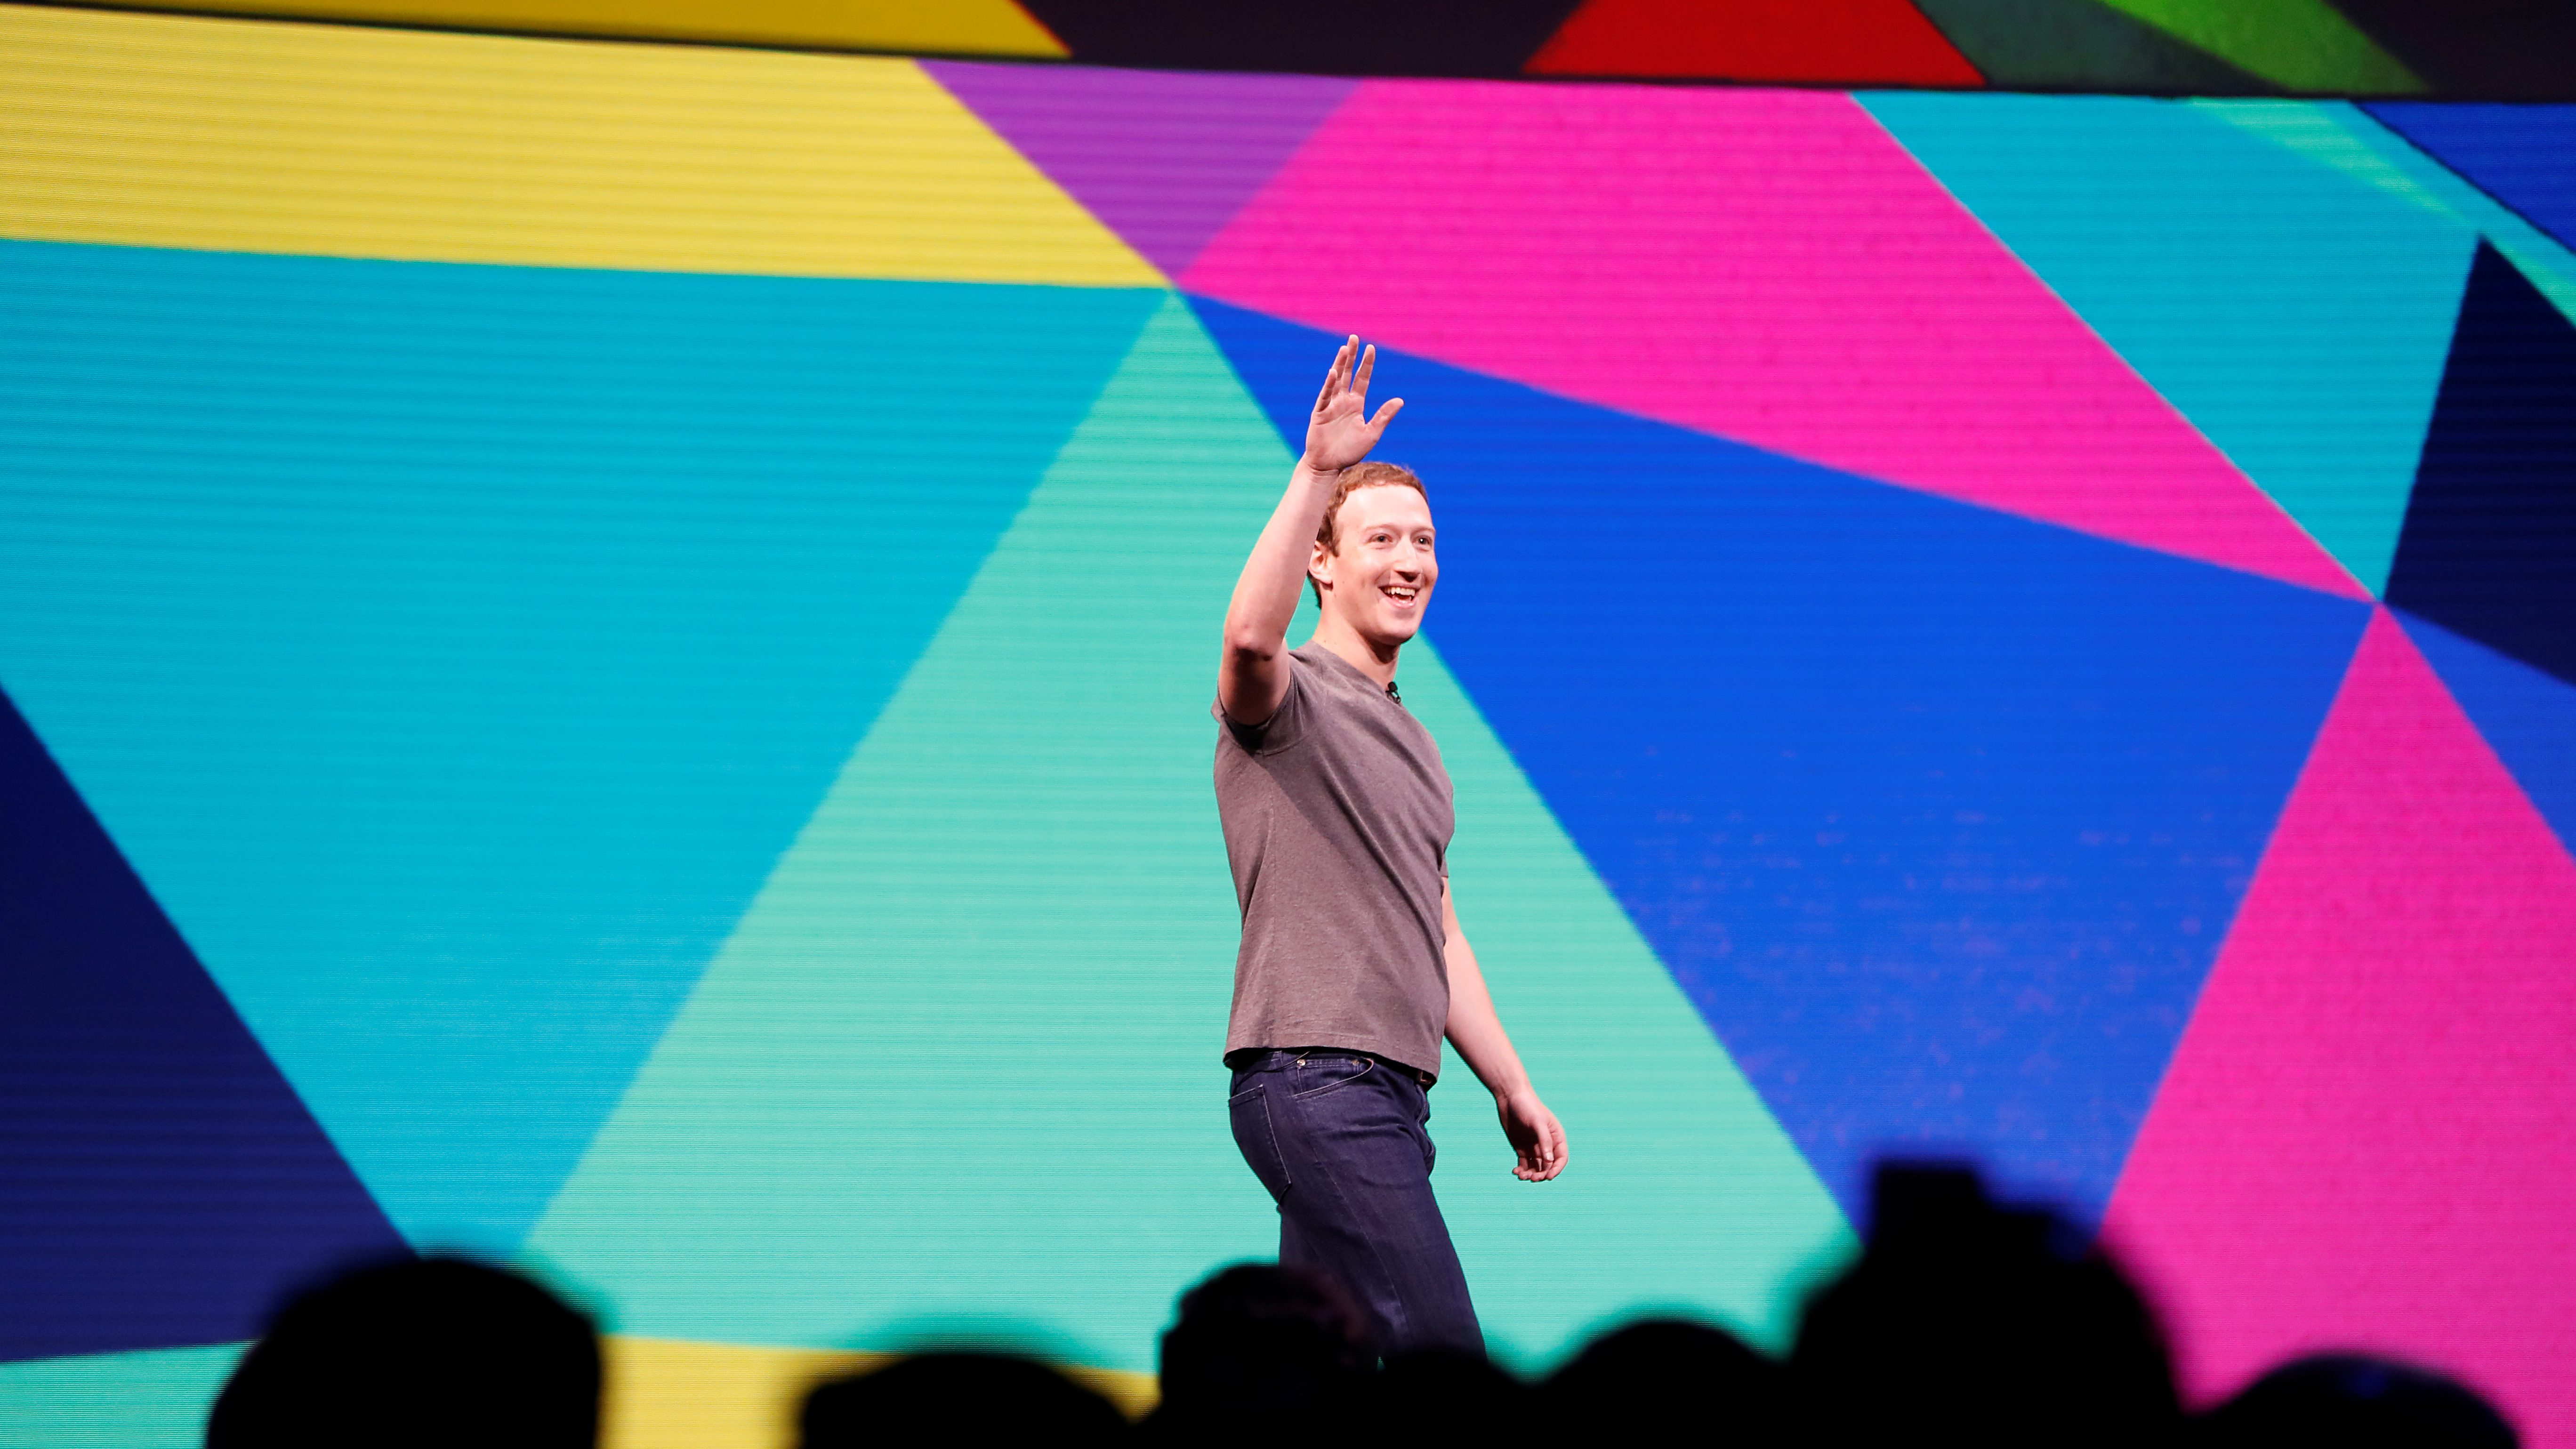 Facebook Founder and CEO Mark Zuckerberg waves as he arrives on stage during the annual Facebook F8 developers conference in San Jose, California, U.S., April 18, 2017. REUTERS/Stephen Lam - RC1DD683D260